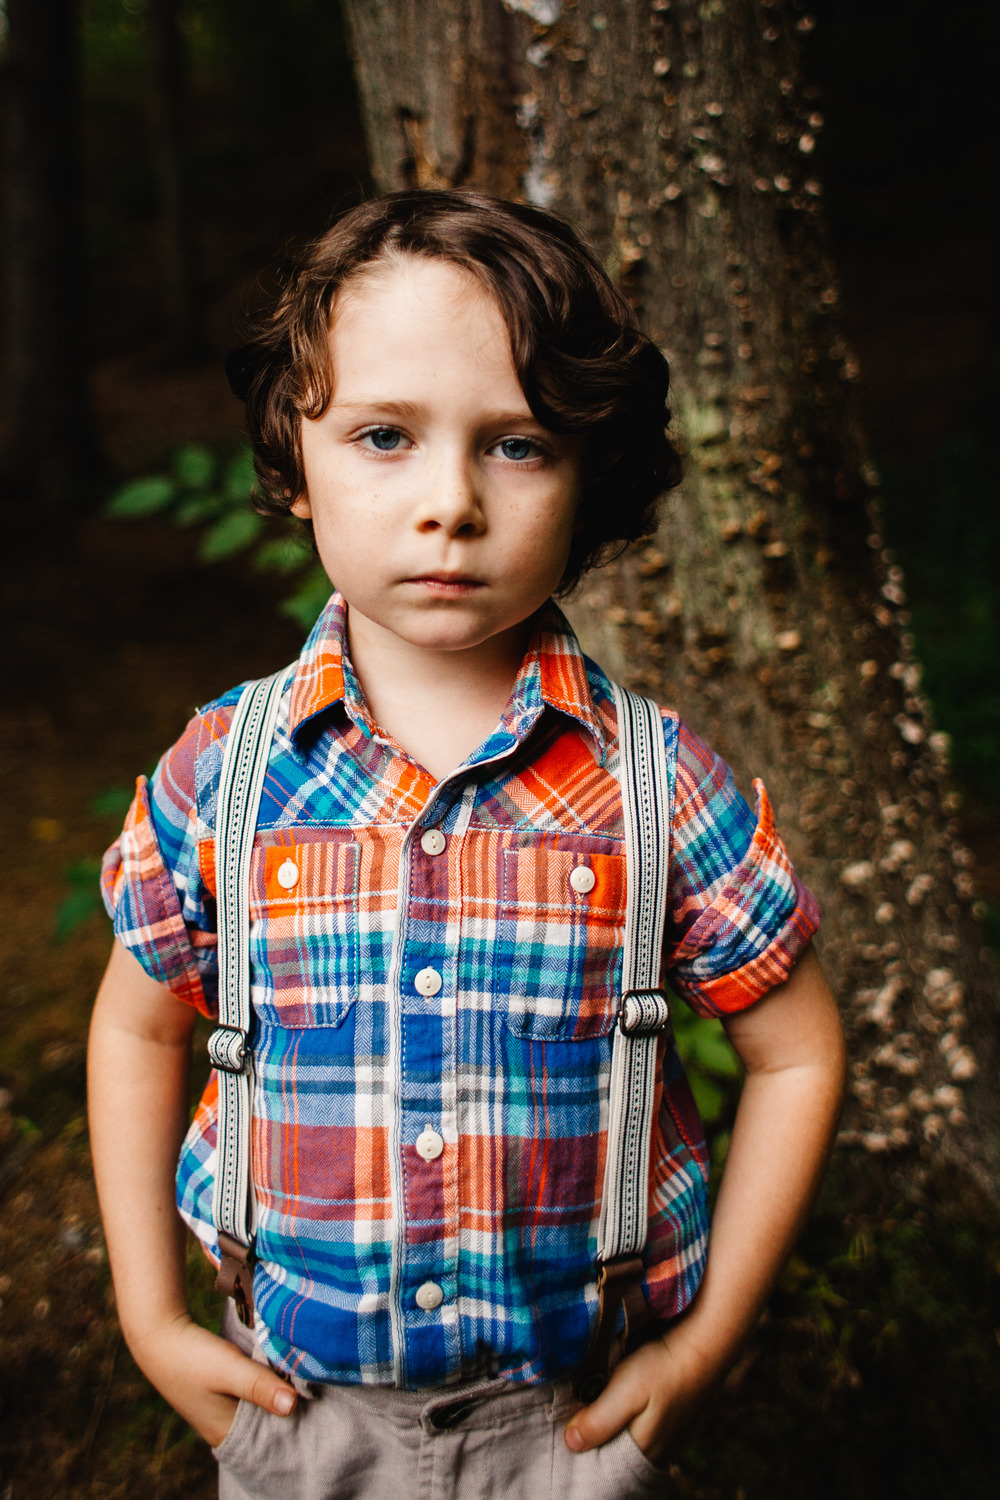 little boy in suspenders | fall photo sessions | stylized photo sessions for kids Long Island | Jennifer Tippett Photography